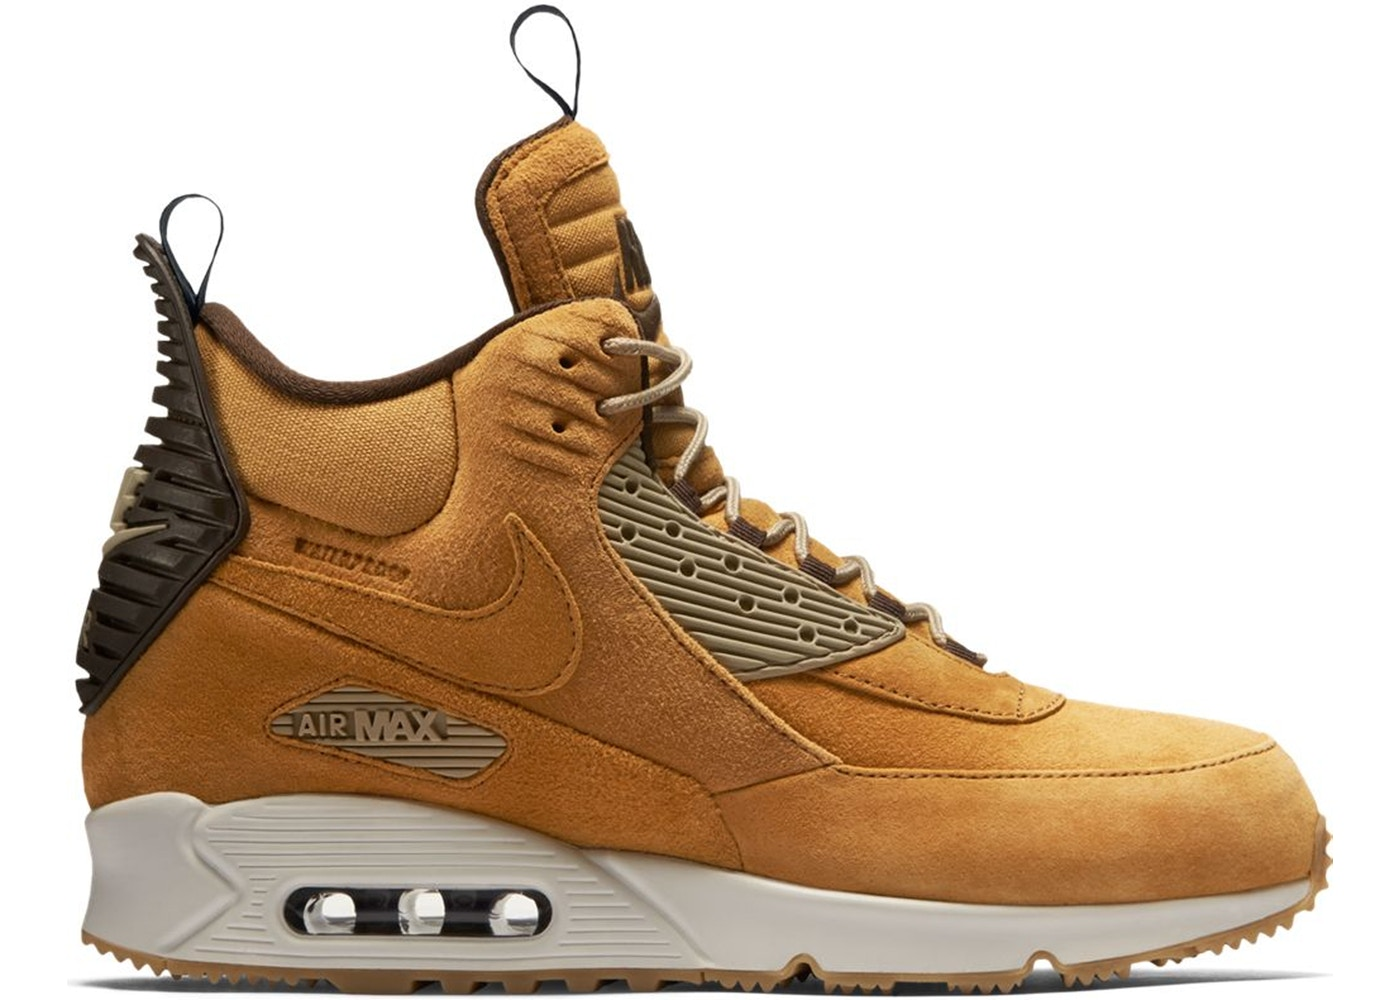 brand new d83d3 a6455 Nike Air Max 90 Shoes - Lowest Ask